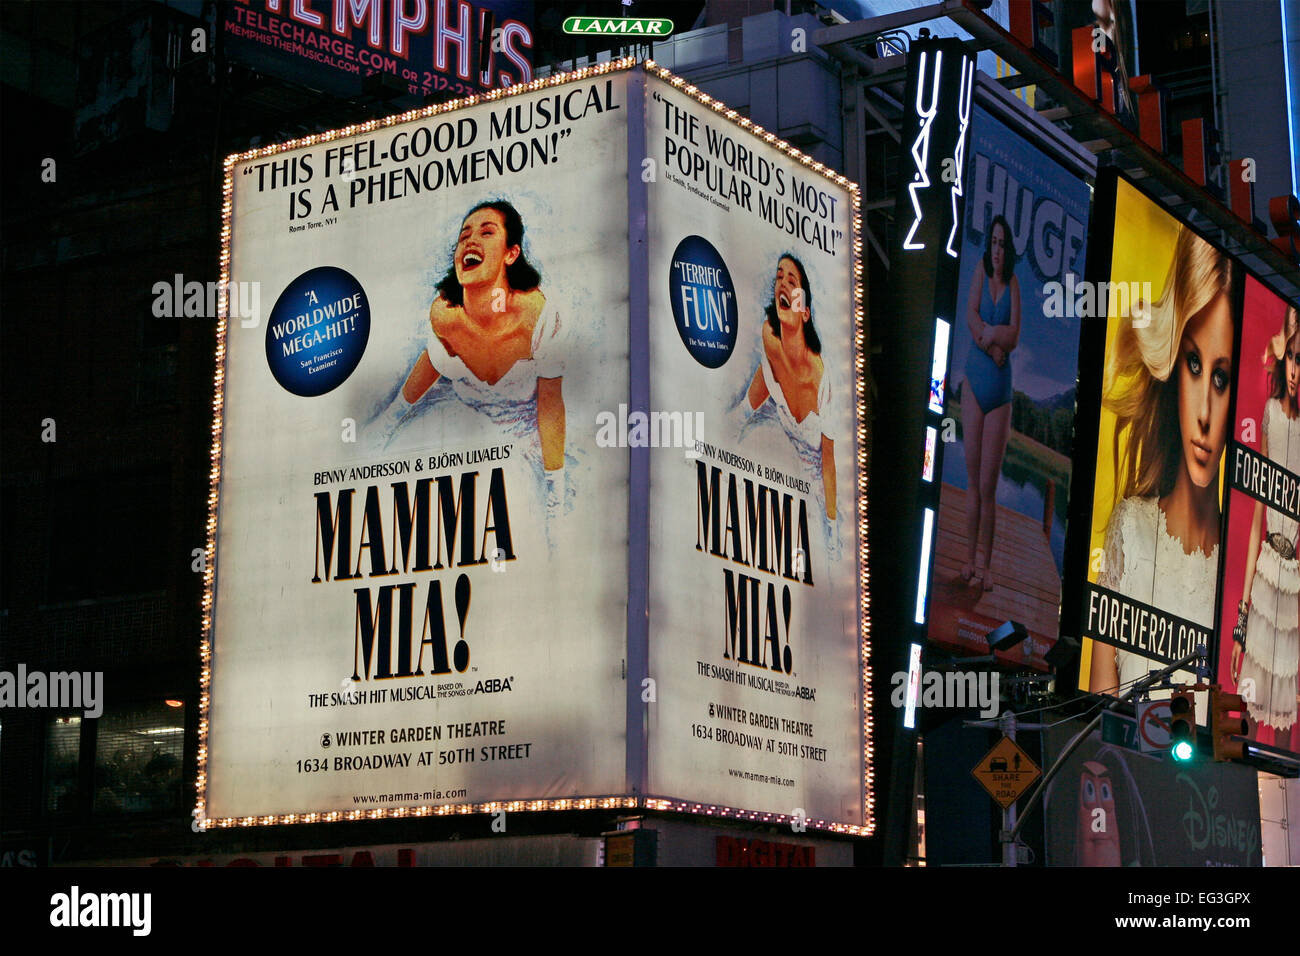 mamma mia musical billboard at times square theater district by